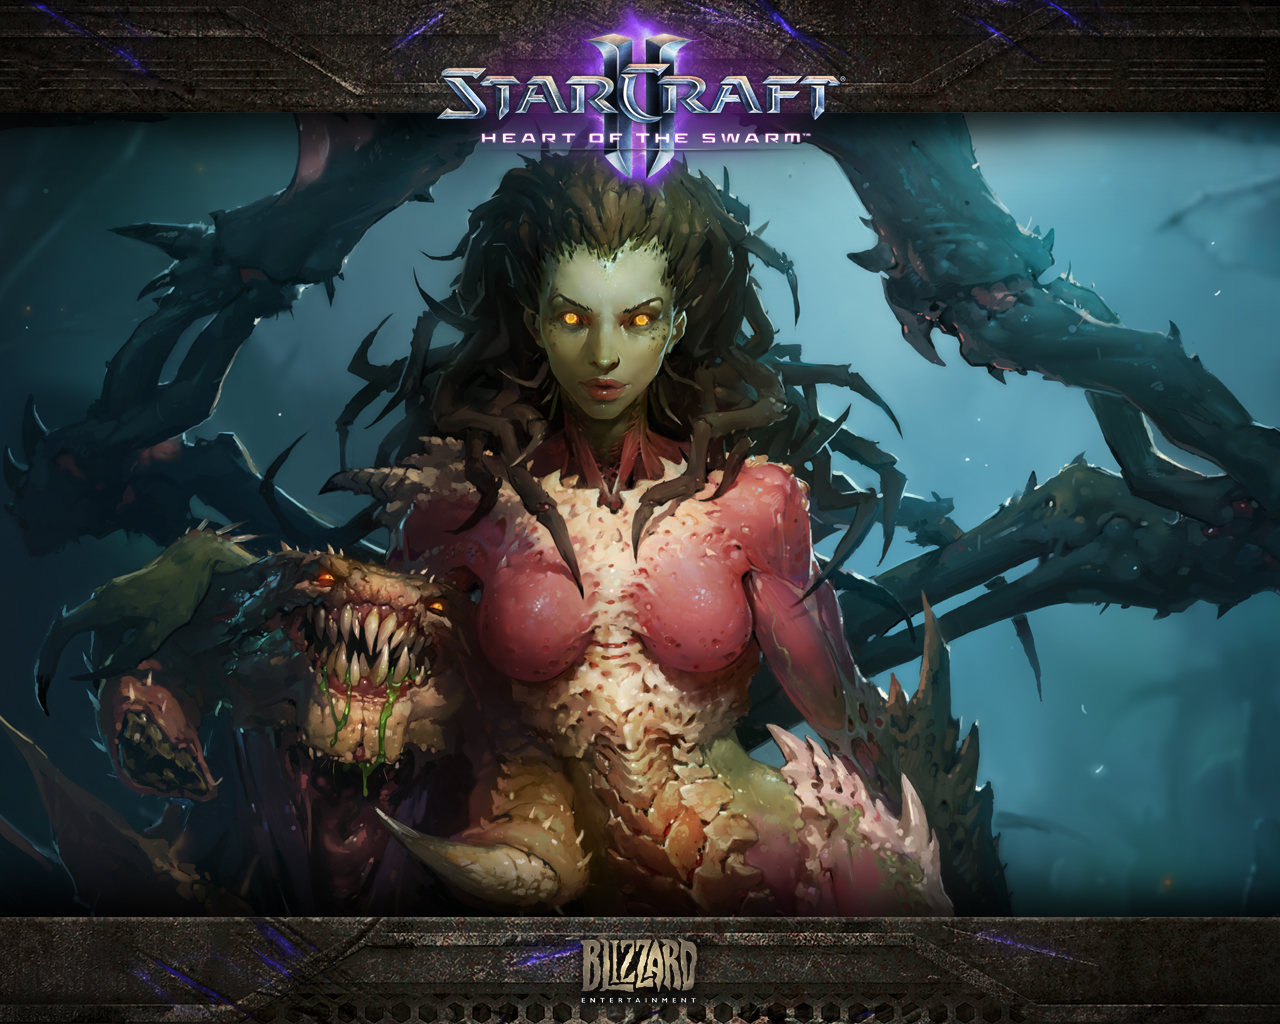 StarCraft II: Heart of the Swarm – La introducción (vídeo)